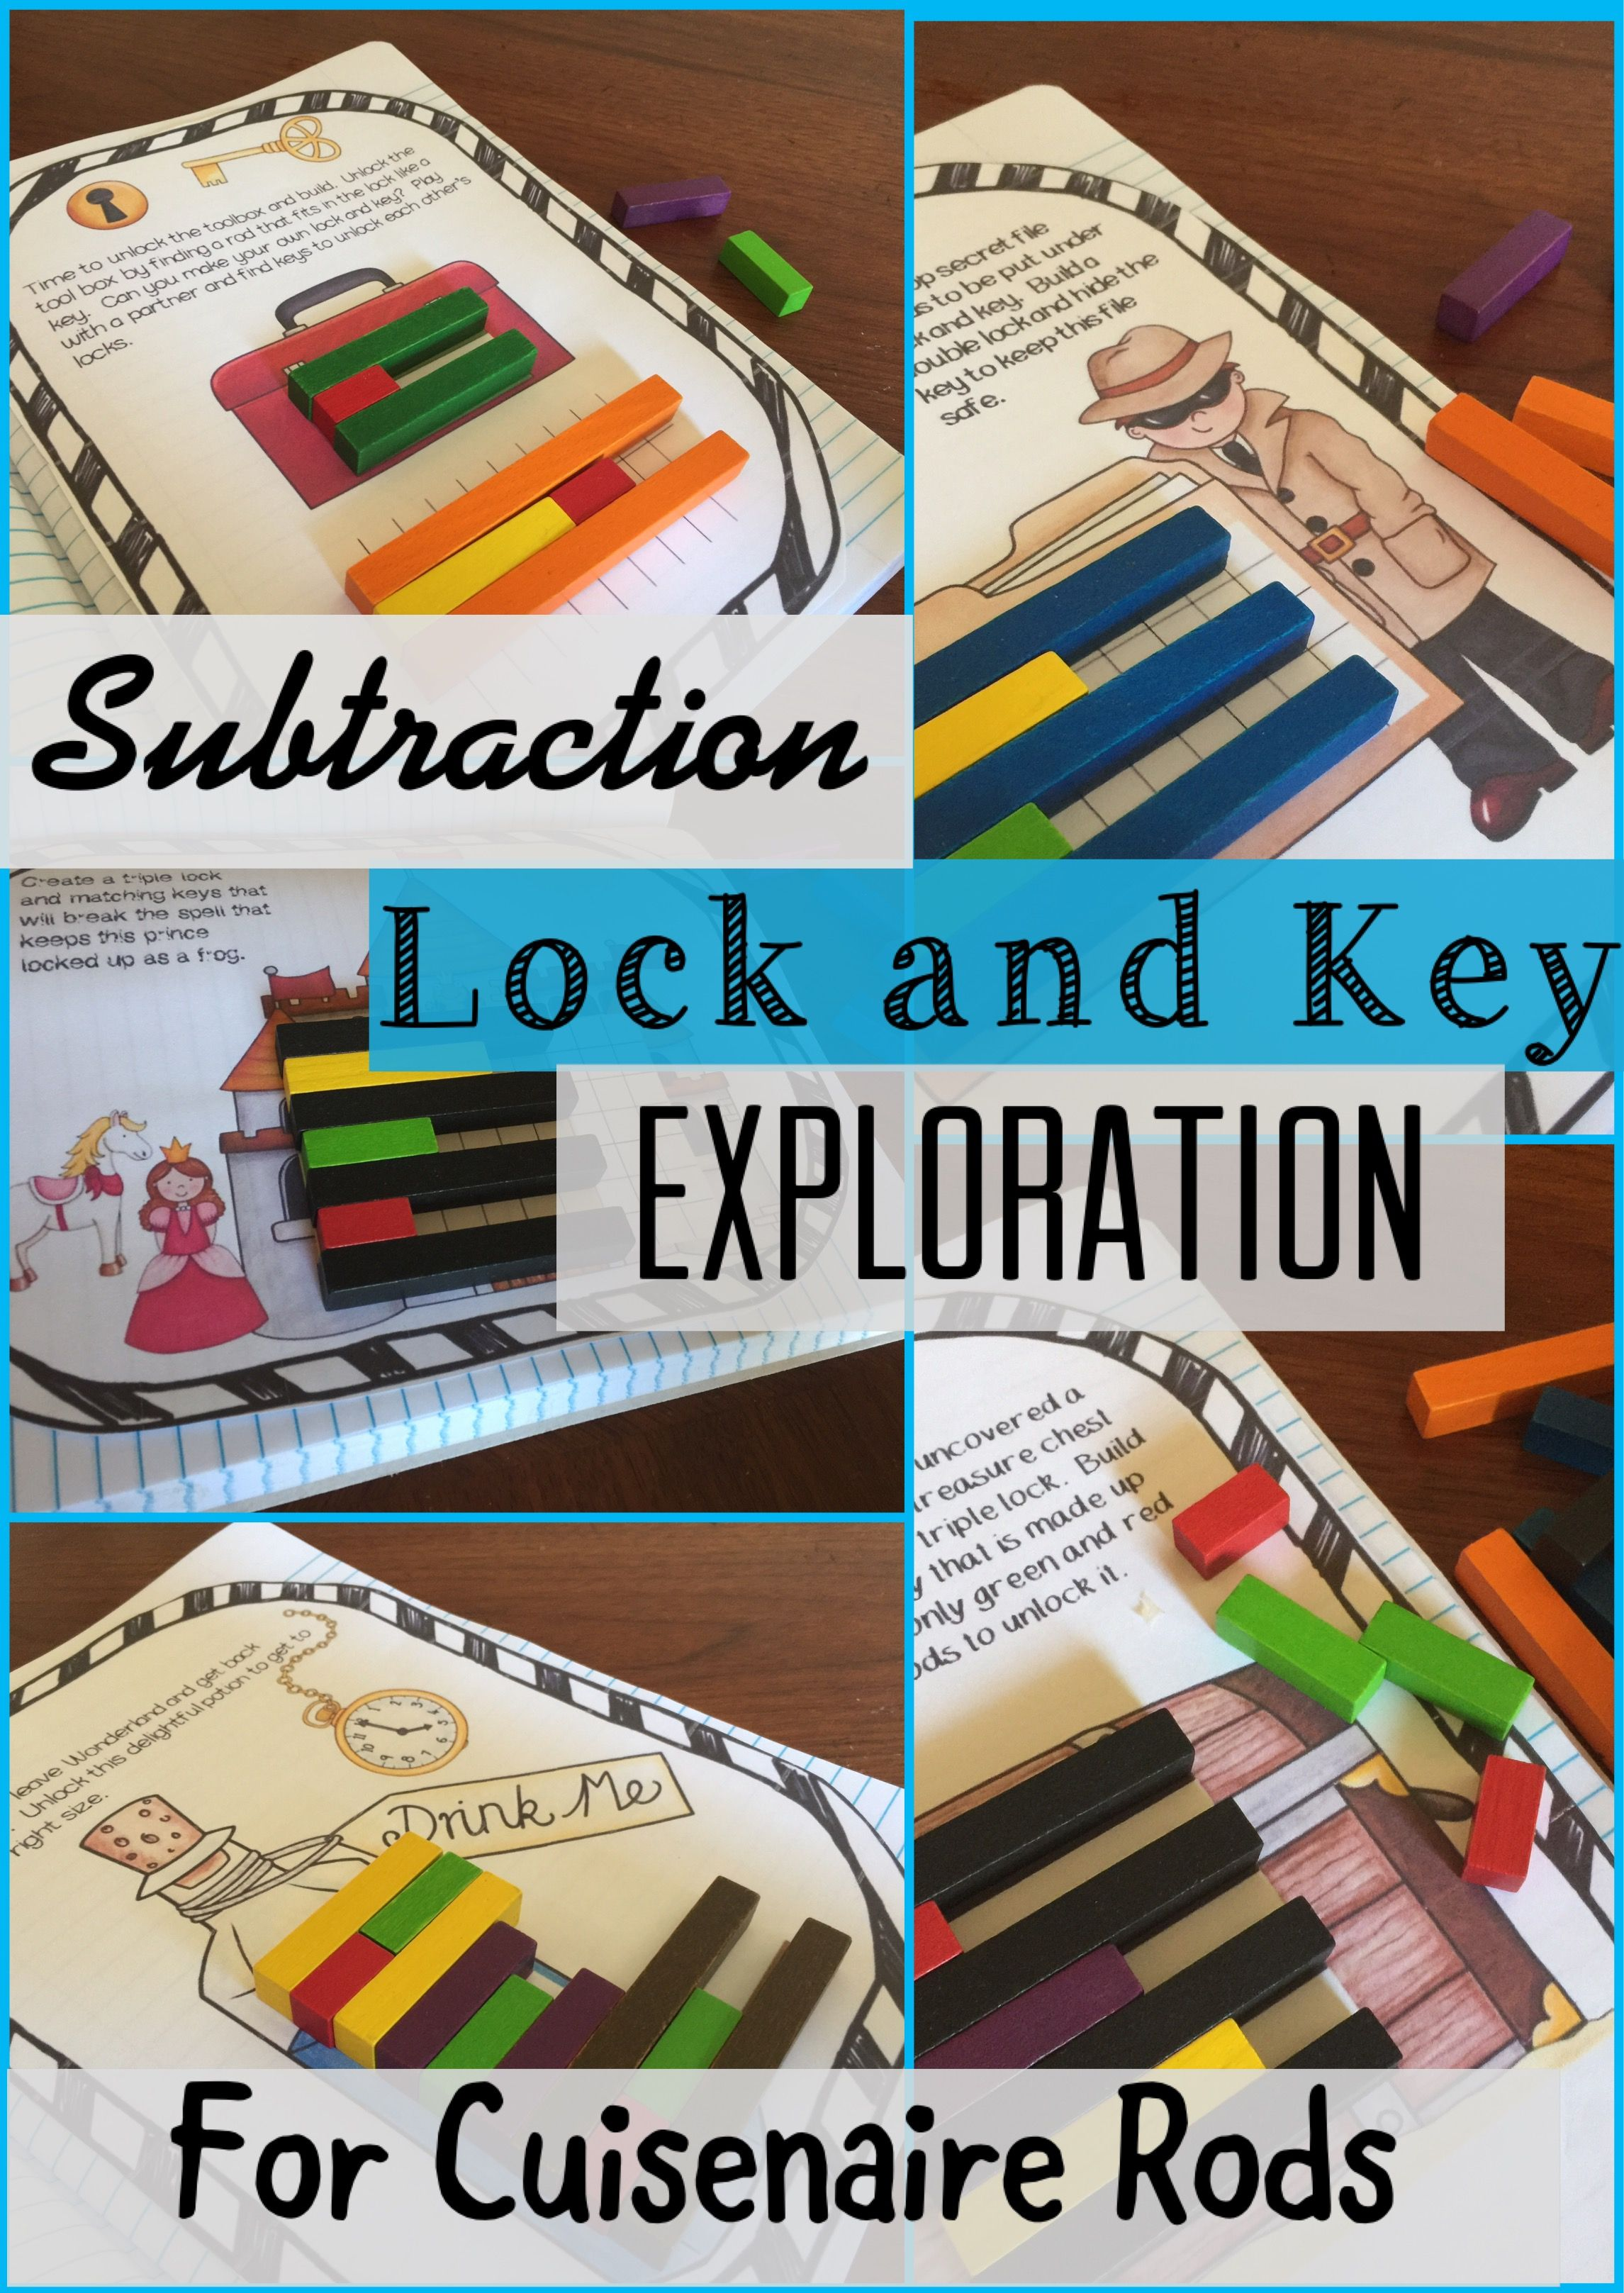 Pdl S Subtraction Lock And Key Exploration For Cuisenaire